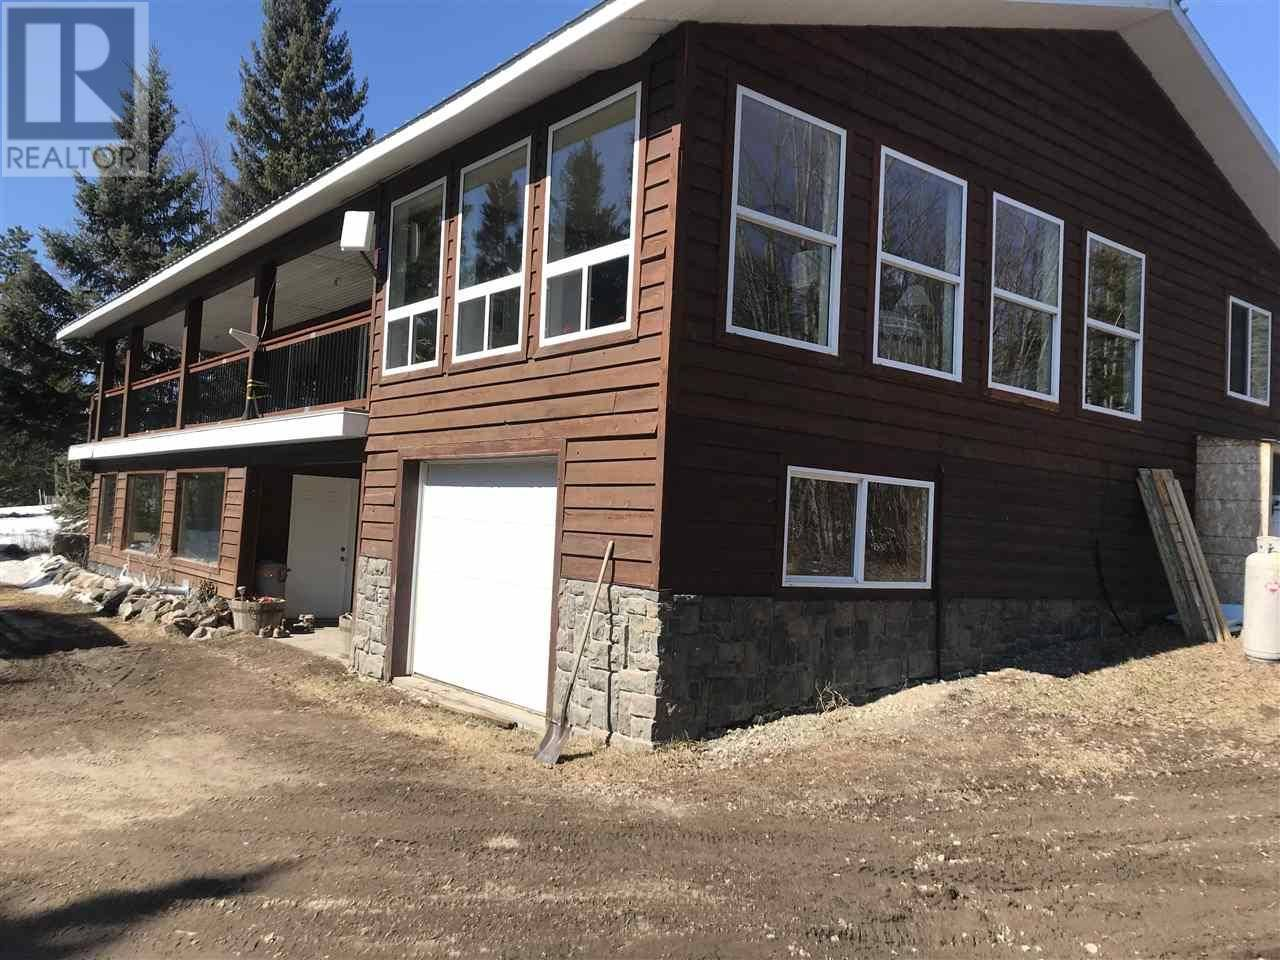 House for sale at 7550 Giesbrecht Pit Rd Vanderhoof British Columbia - MLS: R2449664